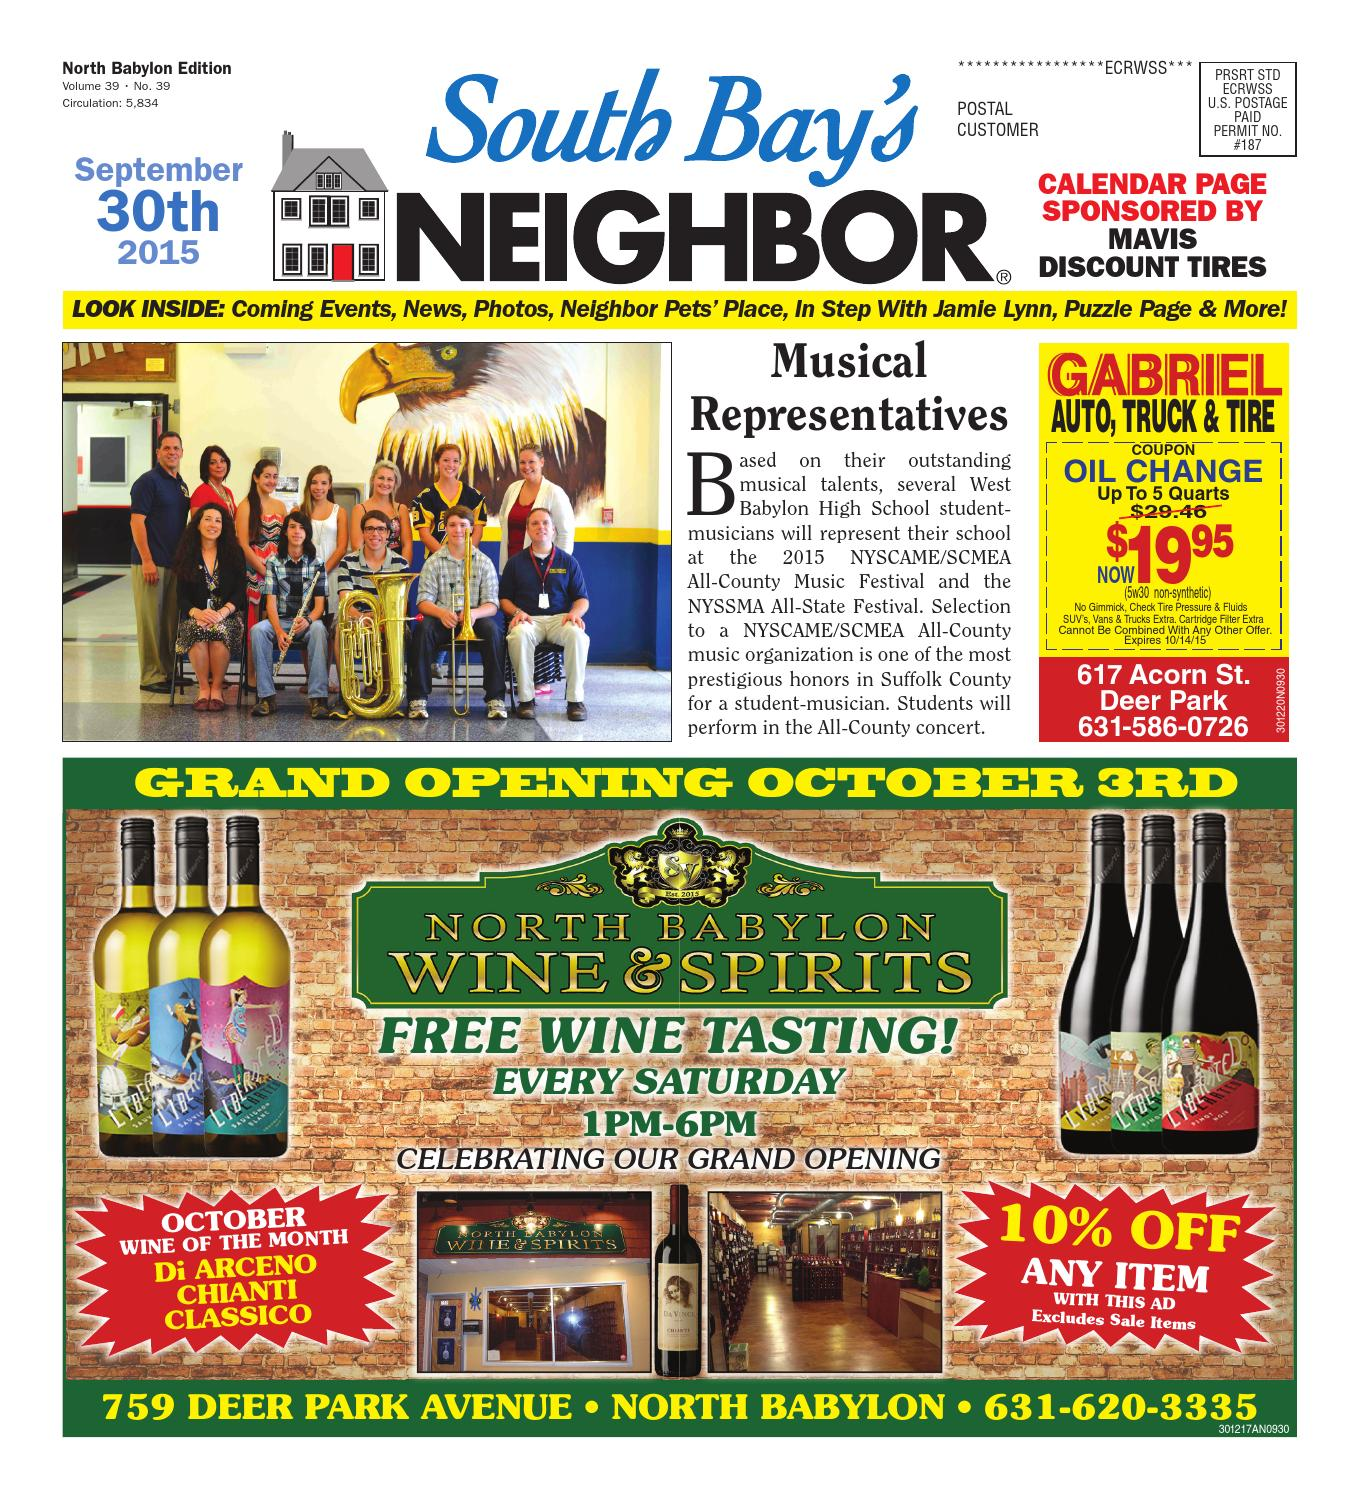 September 30 2015 North Babylon By South Bay S Neighbor Newspapers